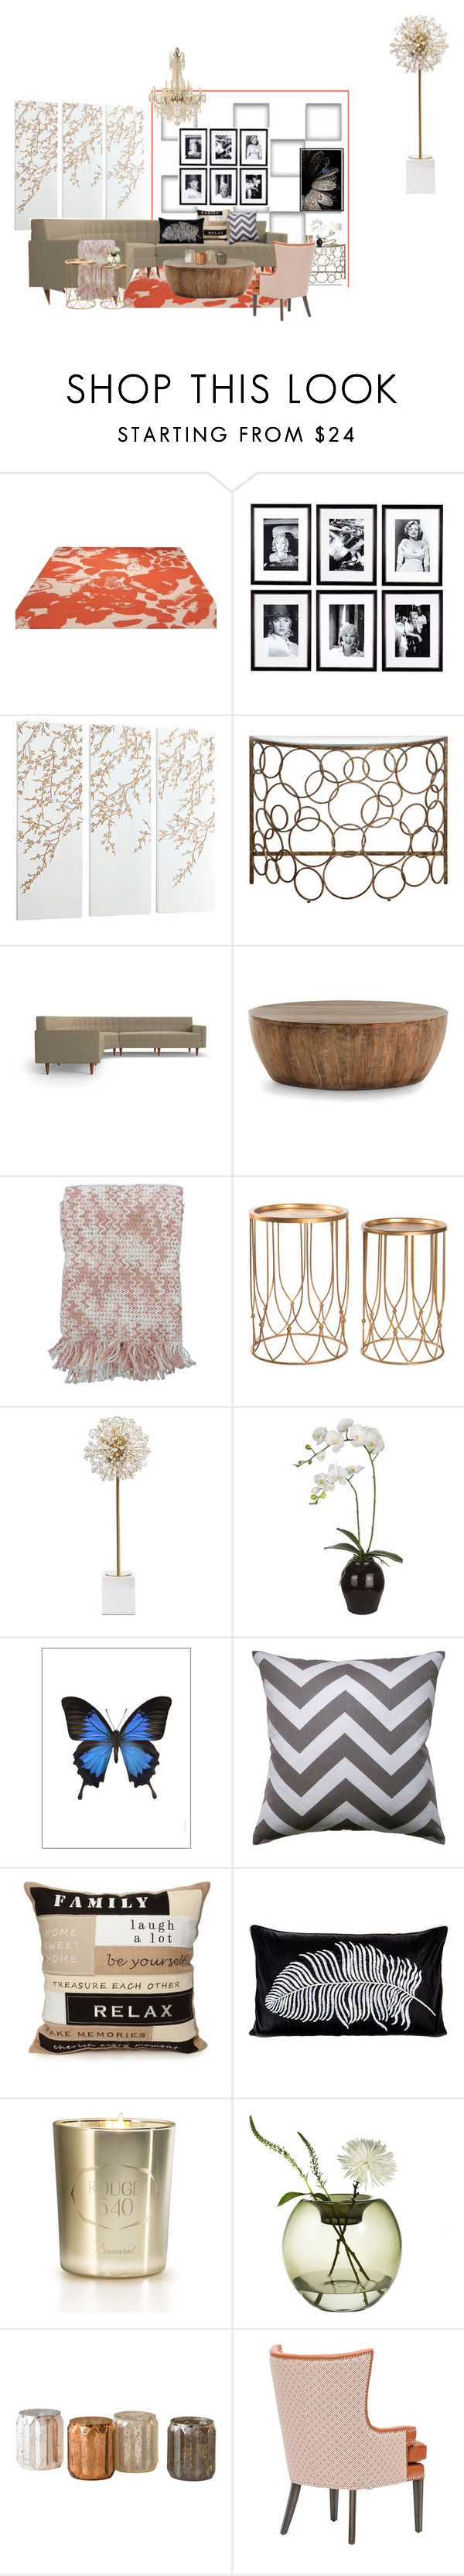 """""""stylish space"""" by lindagama on Polyvore featuring interior, interiors, interior design, home, home decor, interior decorating, ESPRIT, Eichholtz, Cyan Design and Arteriors"""